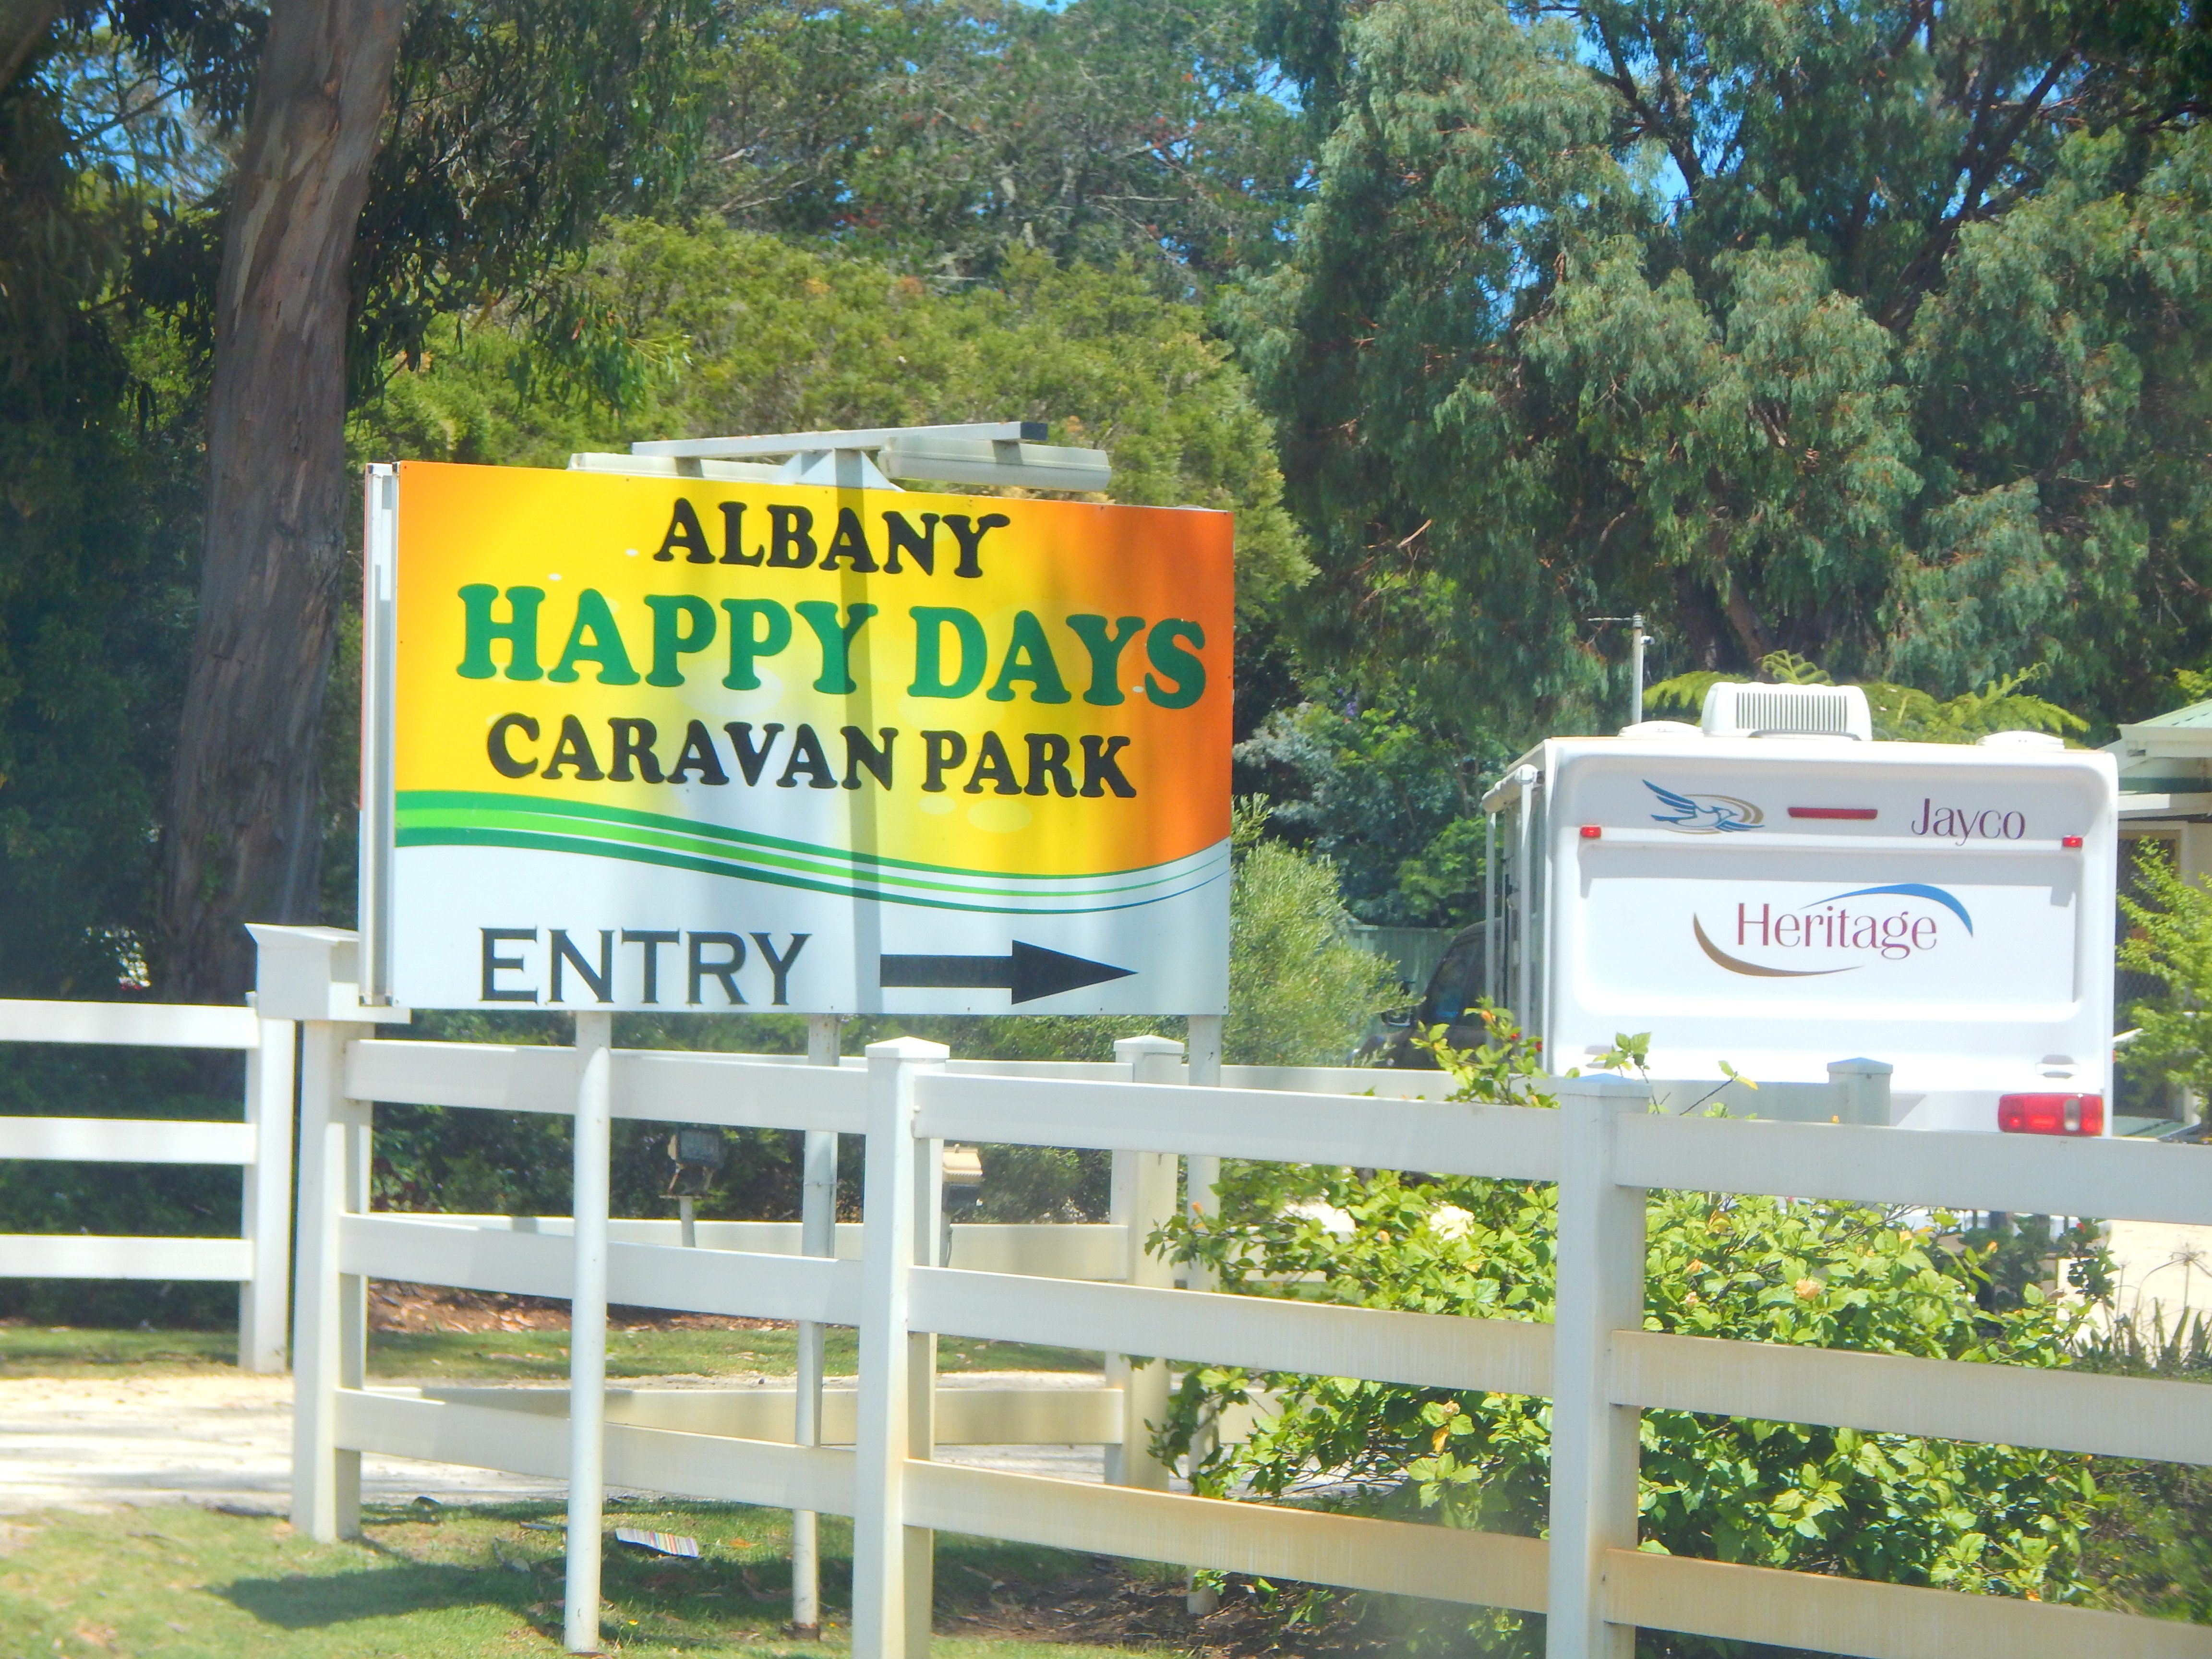 Albany's Happy Days Caravan Park